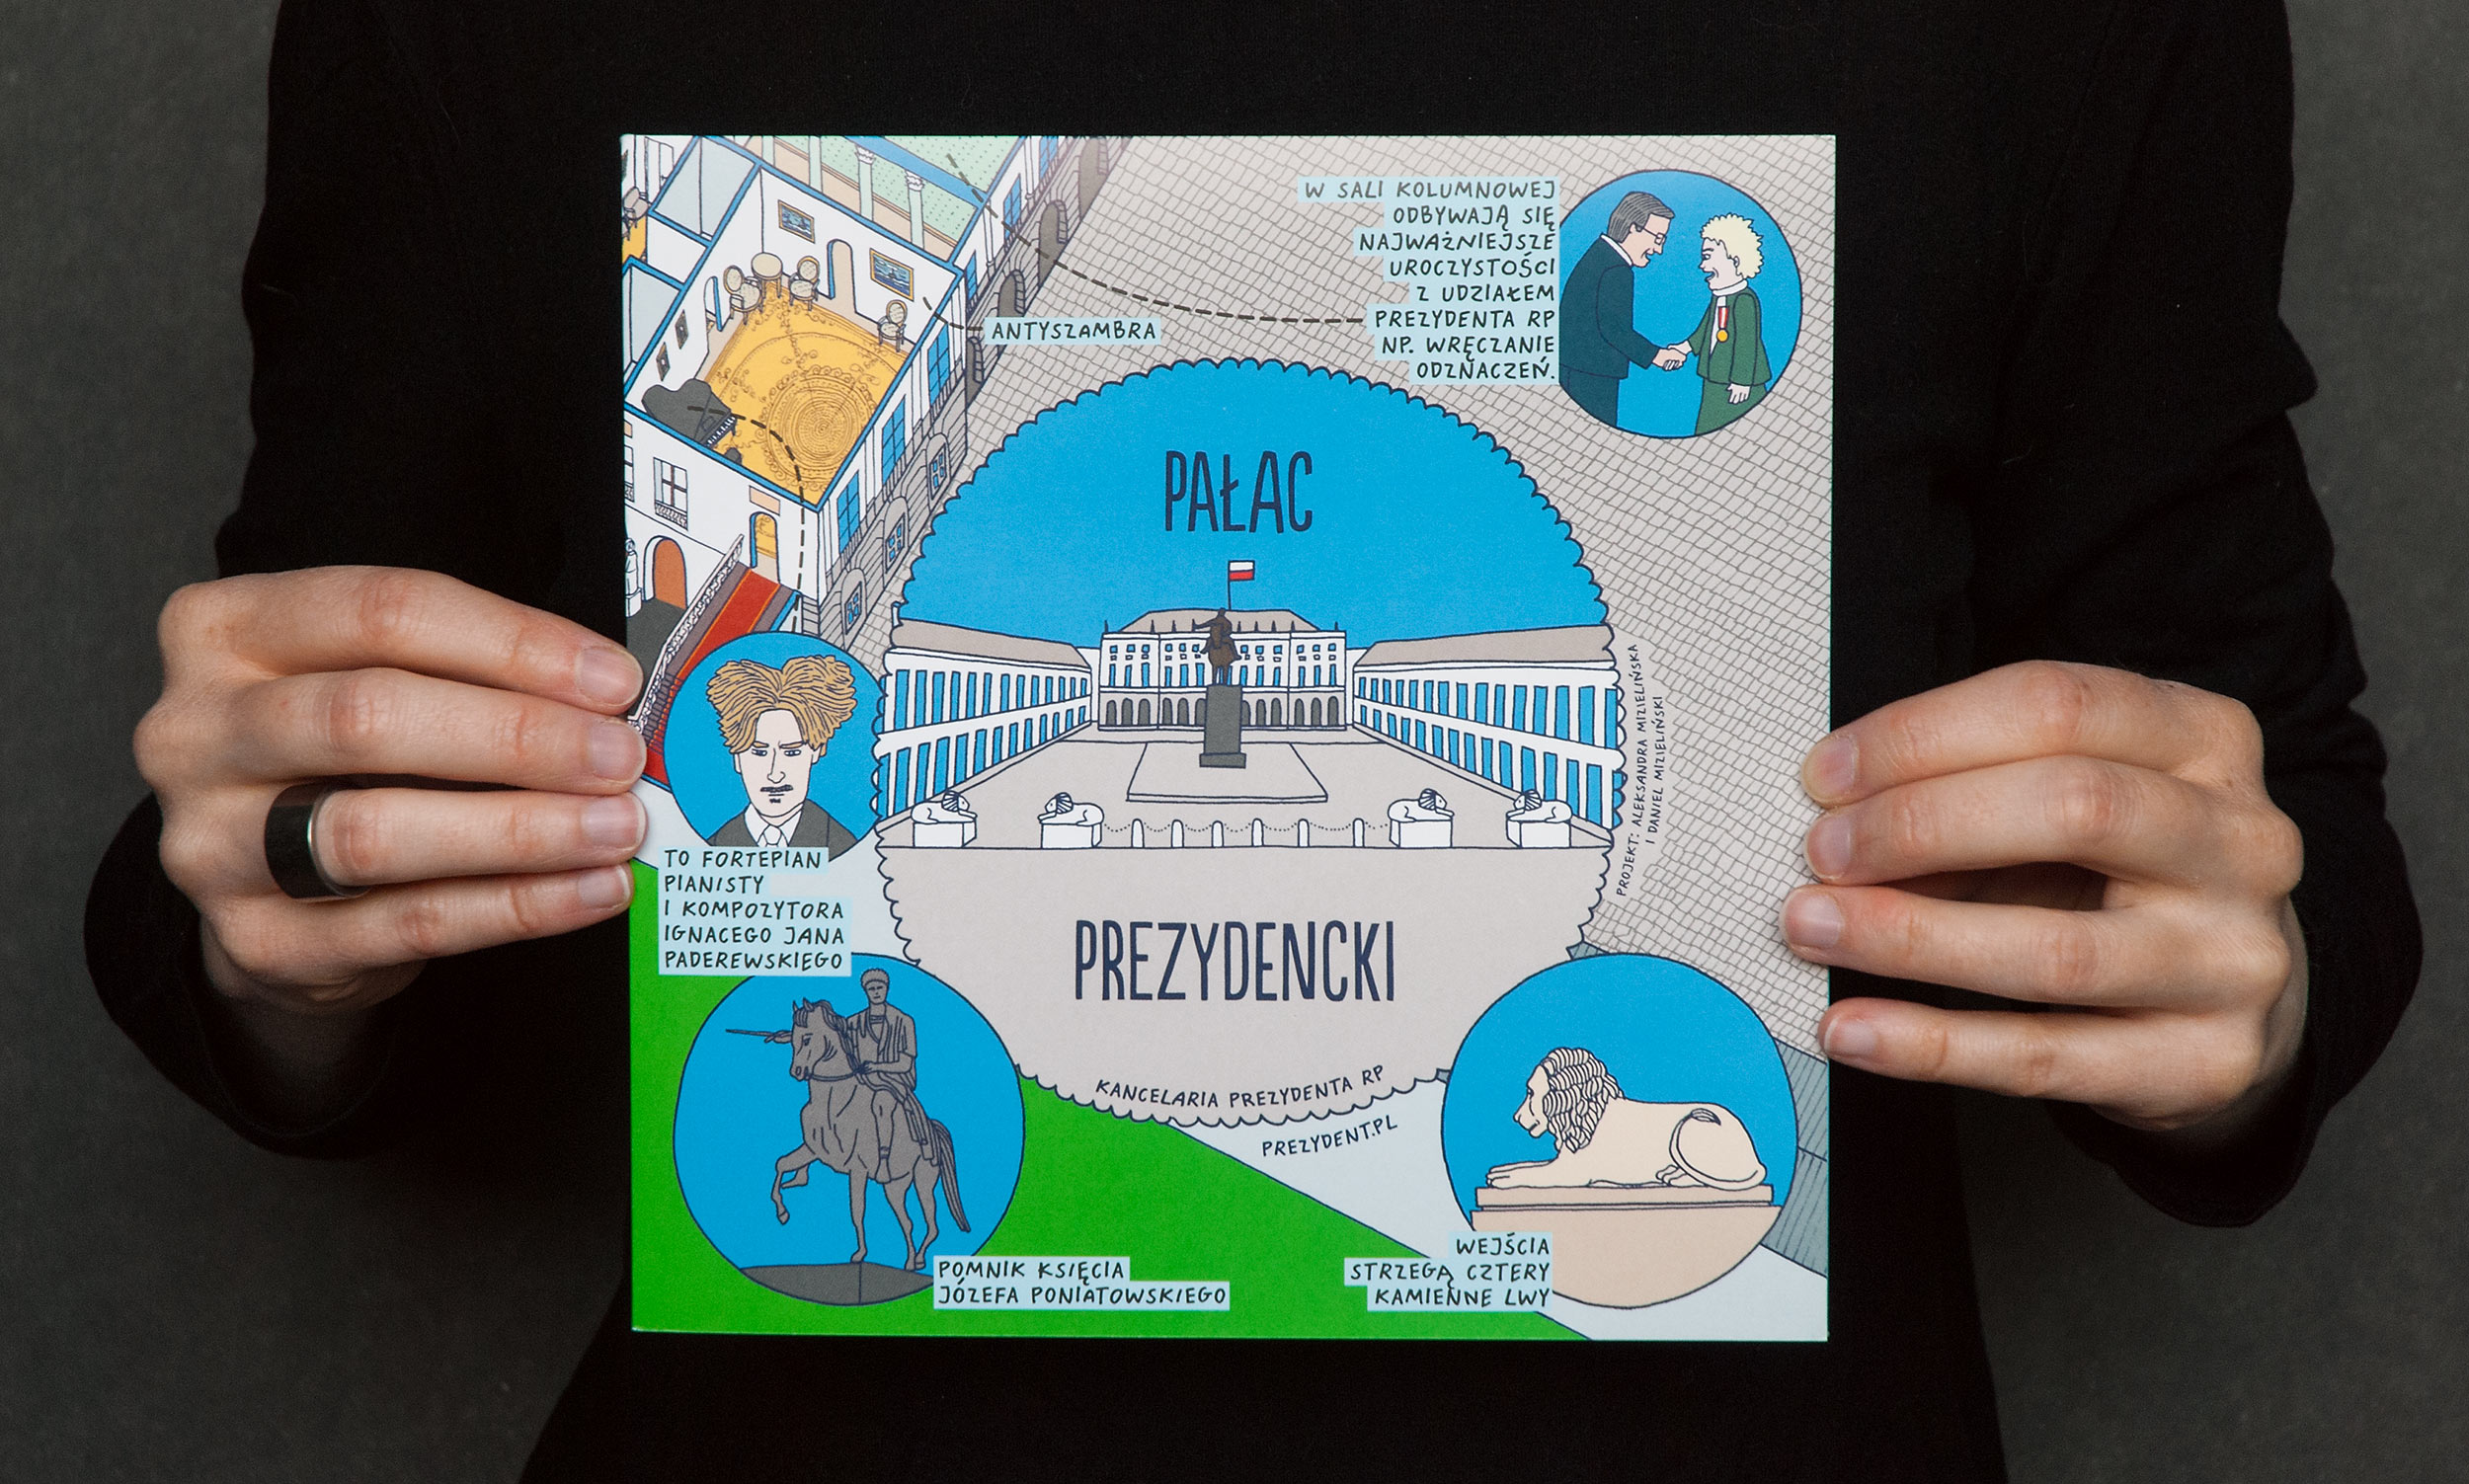 Origami version of the Presidential Palace map.